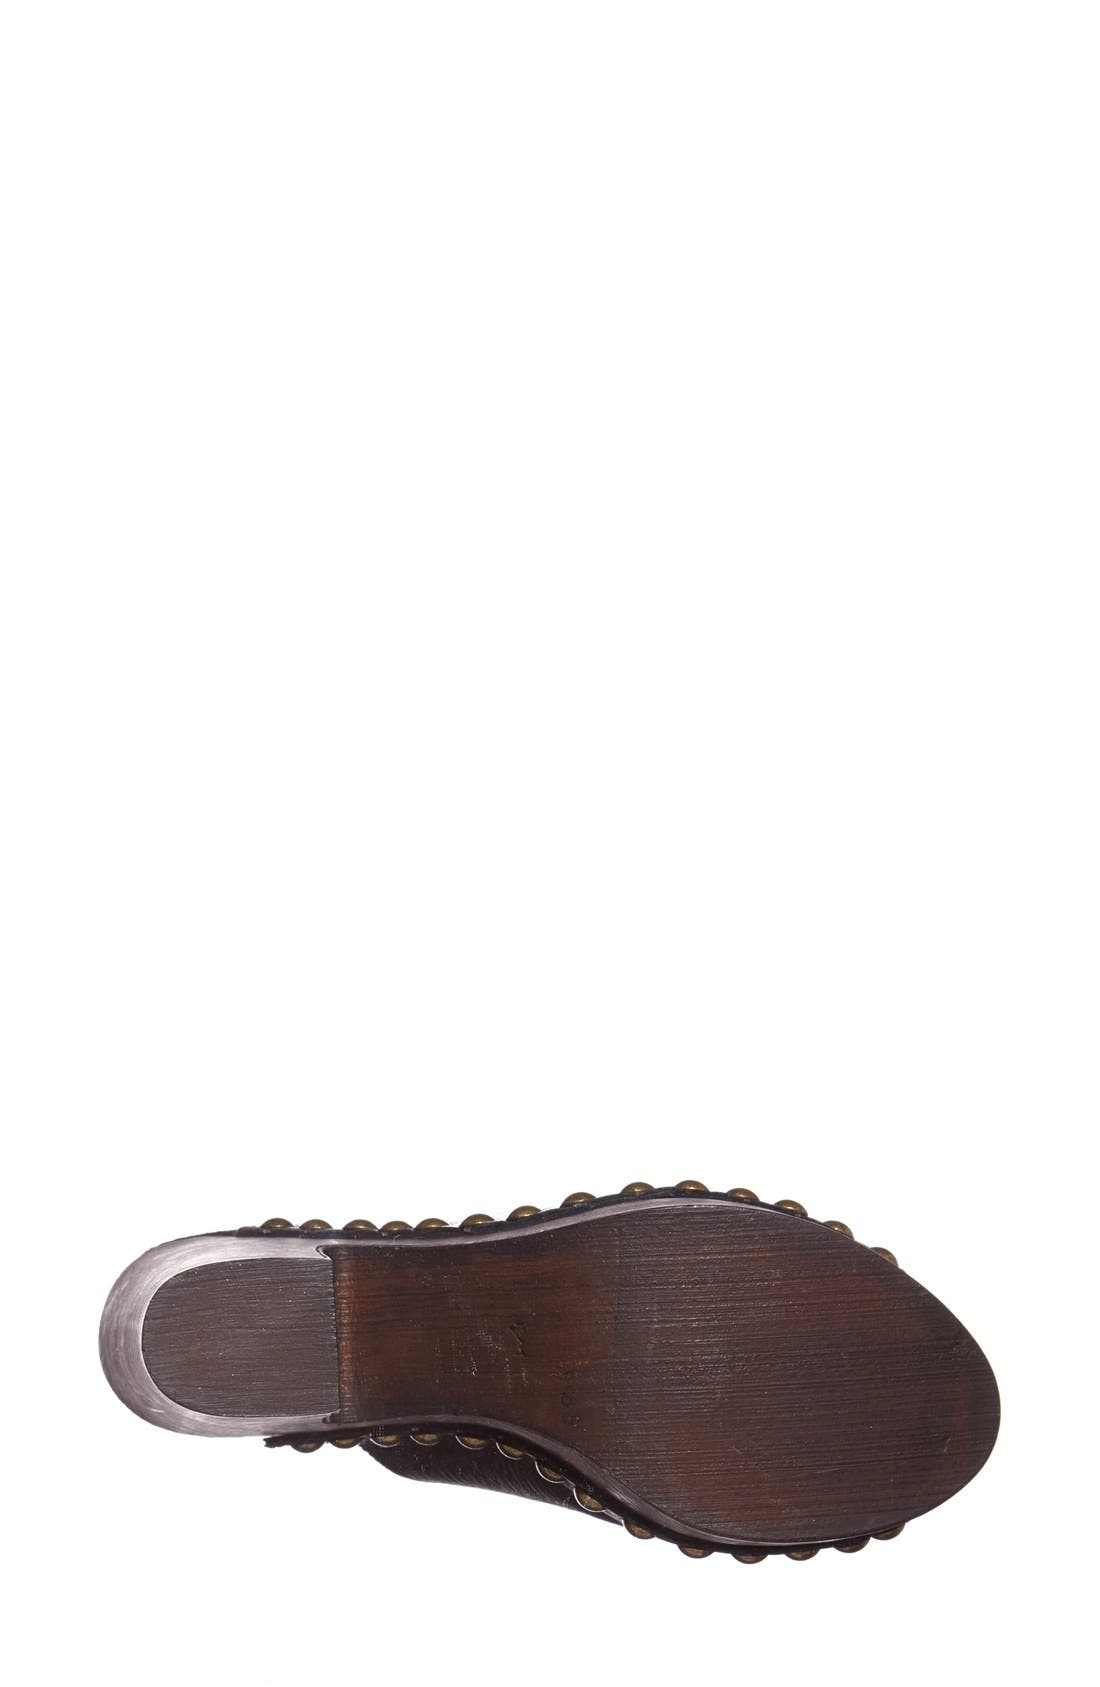 CHARLES DAVID, 'Sacche' Leather Clog, Alternate thumbnail 2, color, 001